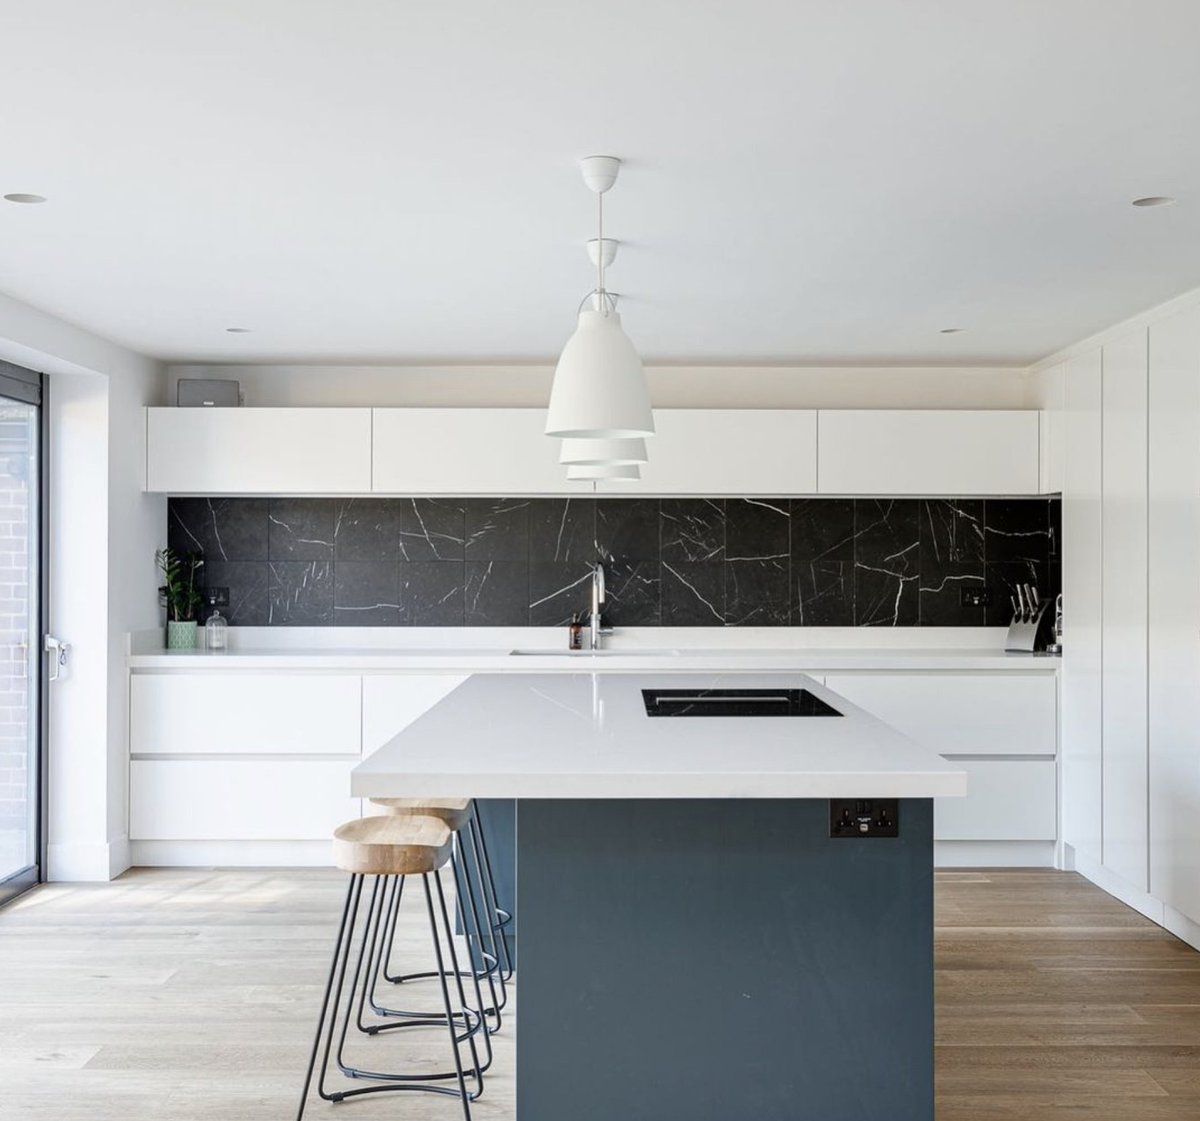 We love the sleek lines & contrasting colours in this striking kitchen by bit.ly/PlanetFurniture . The island offers a pop of Hague Blue by @FarrowandBall while the Silestone worktop by @CosentinoUK & Miele induction hob with integrated extraction keeps the design streamlined